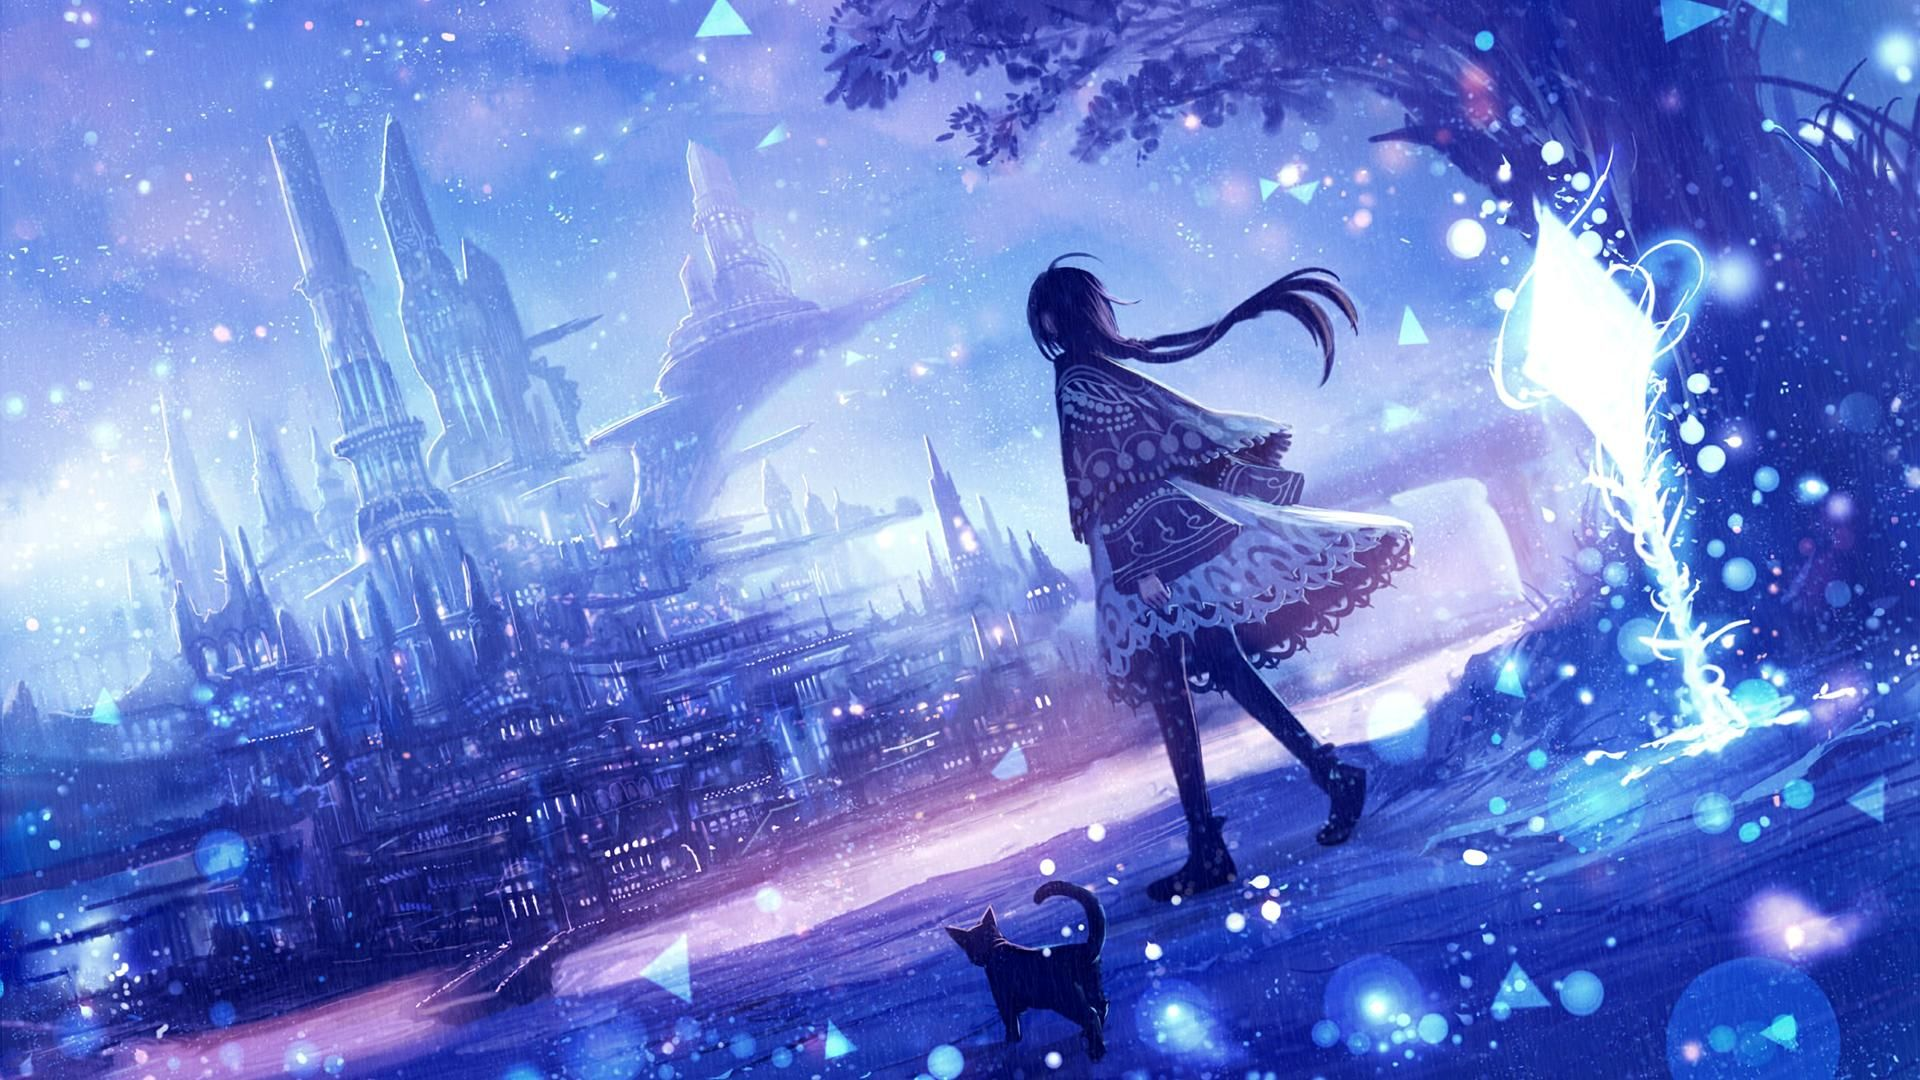 Mystical Original 1920x1080 Anime Wallpaper 1920x1080 Anime Backgrounds Wallpapers Anime Scenery